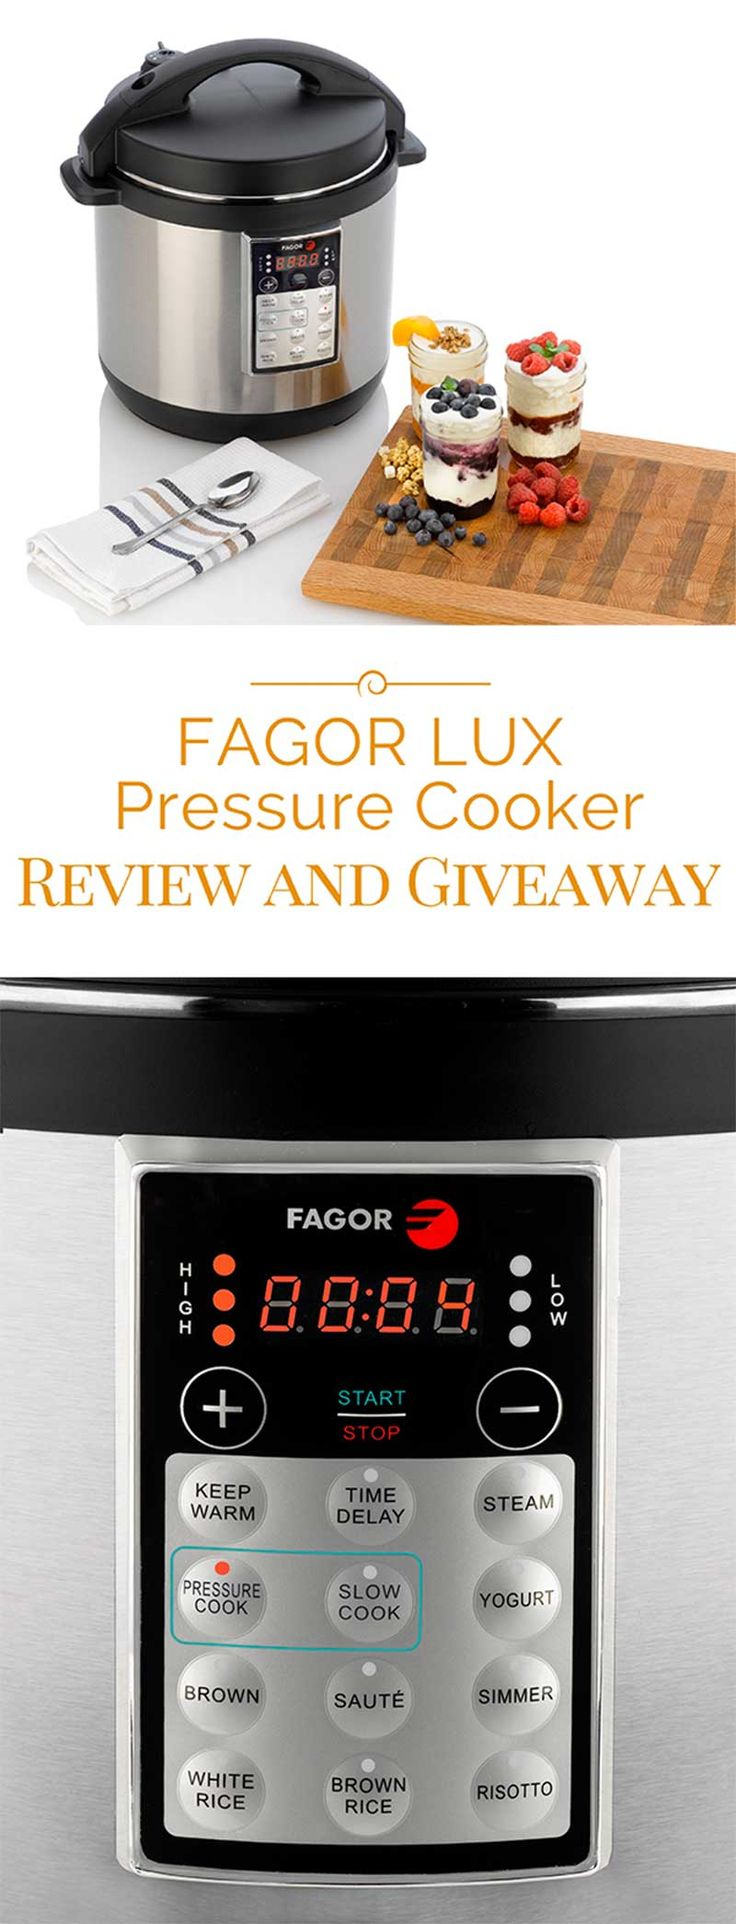 Buy fagor duo 8 quart pressure cooker from bed bath amp beyond - Fagor Lux 8 Quart Multi Cooker Review And Giveaway